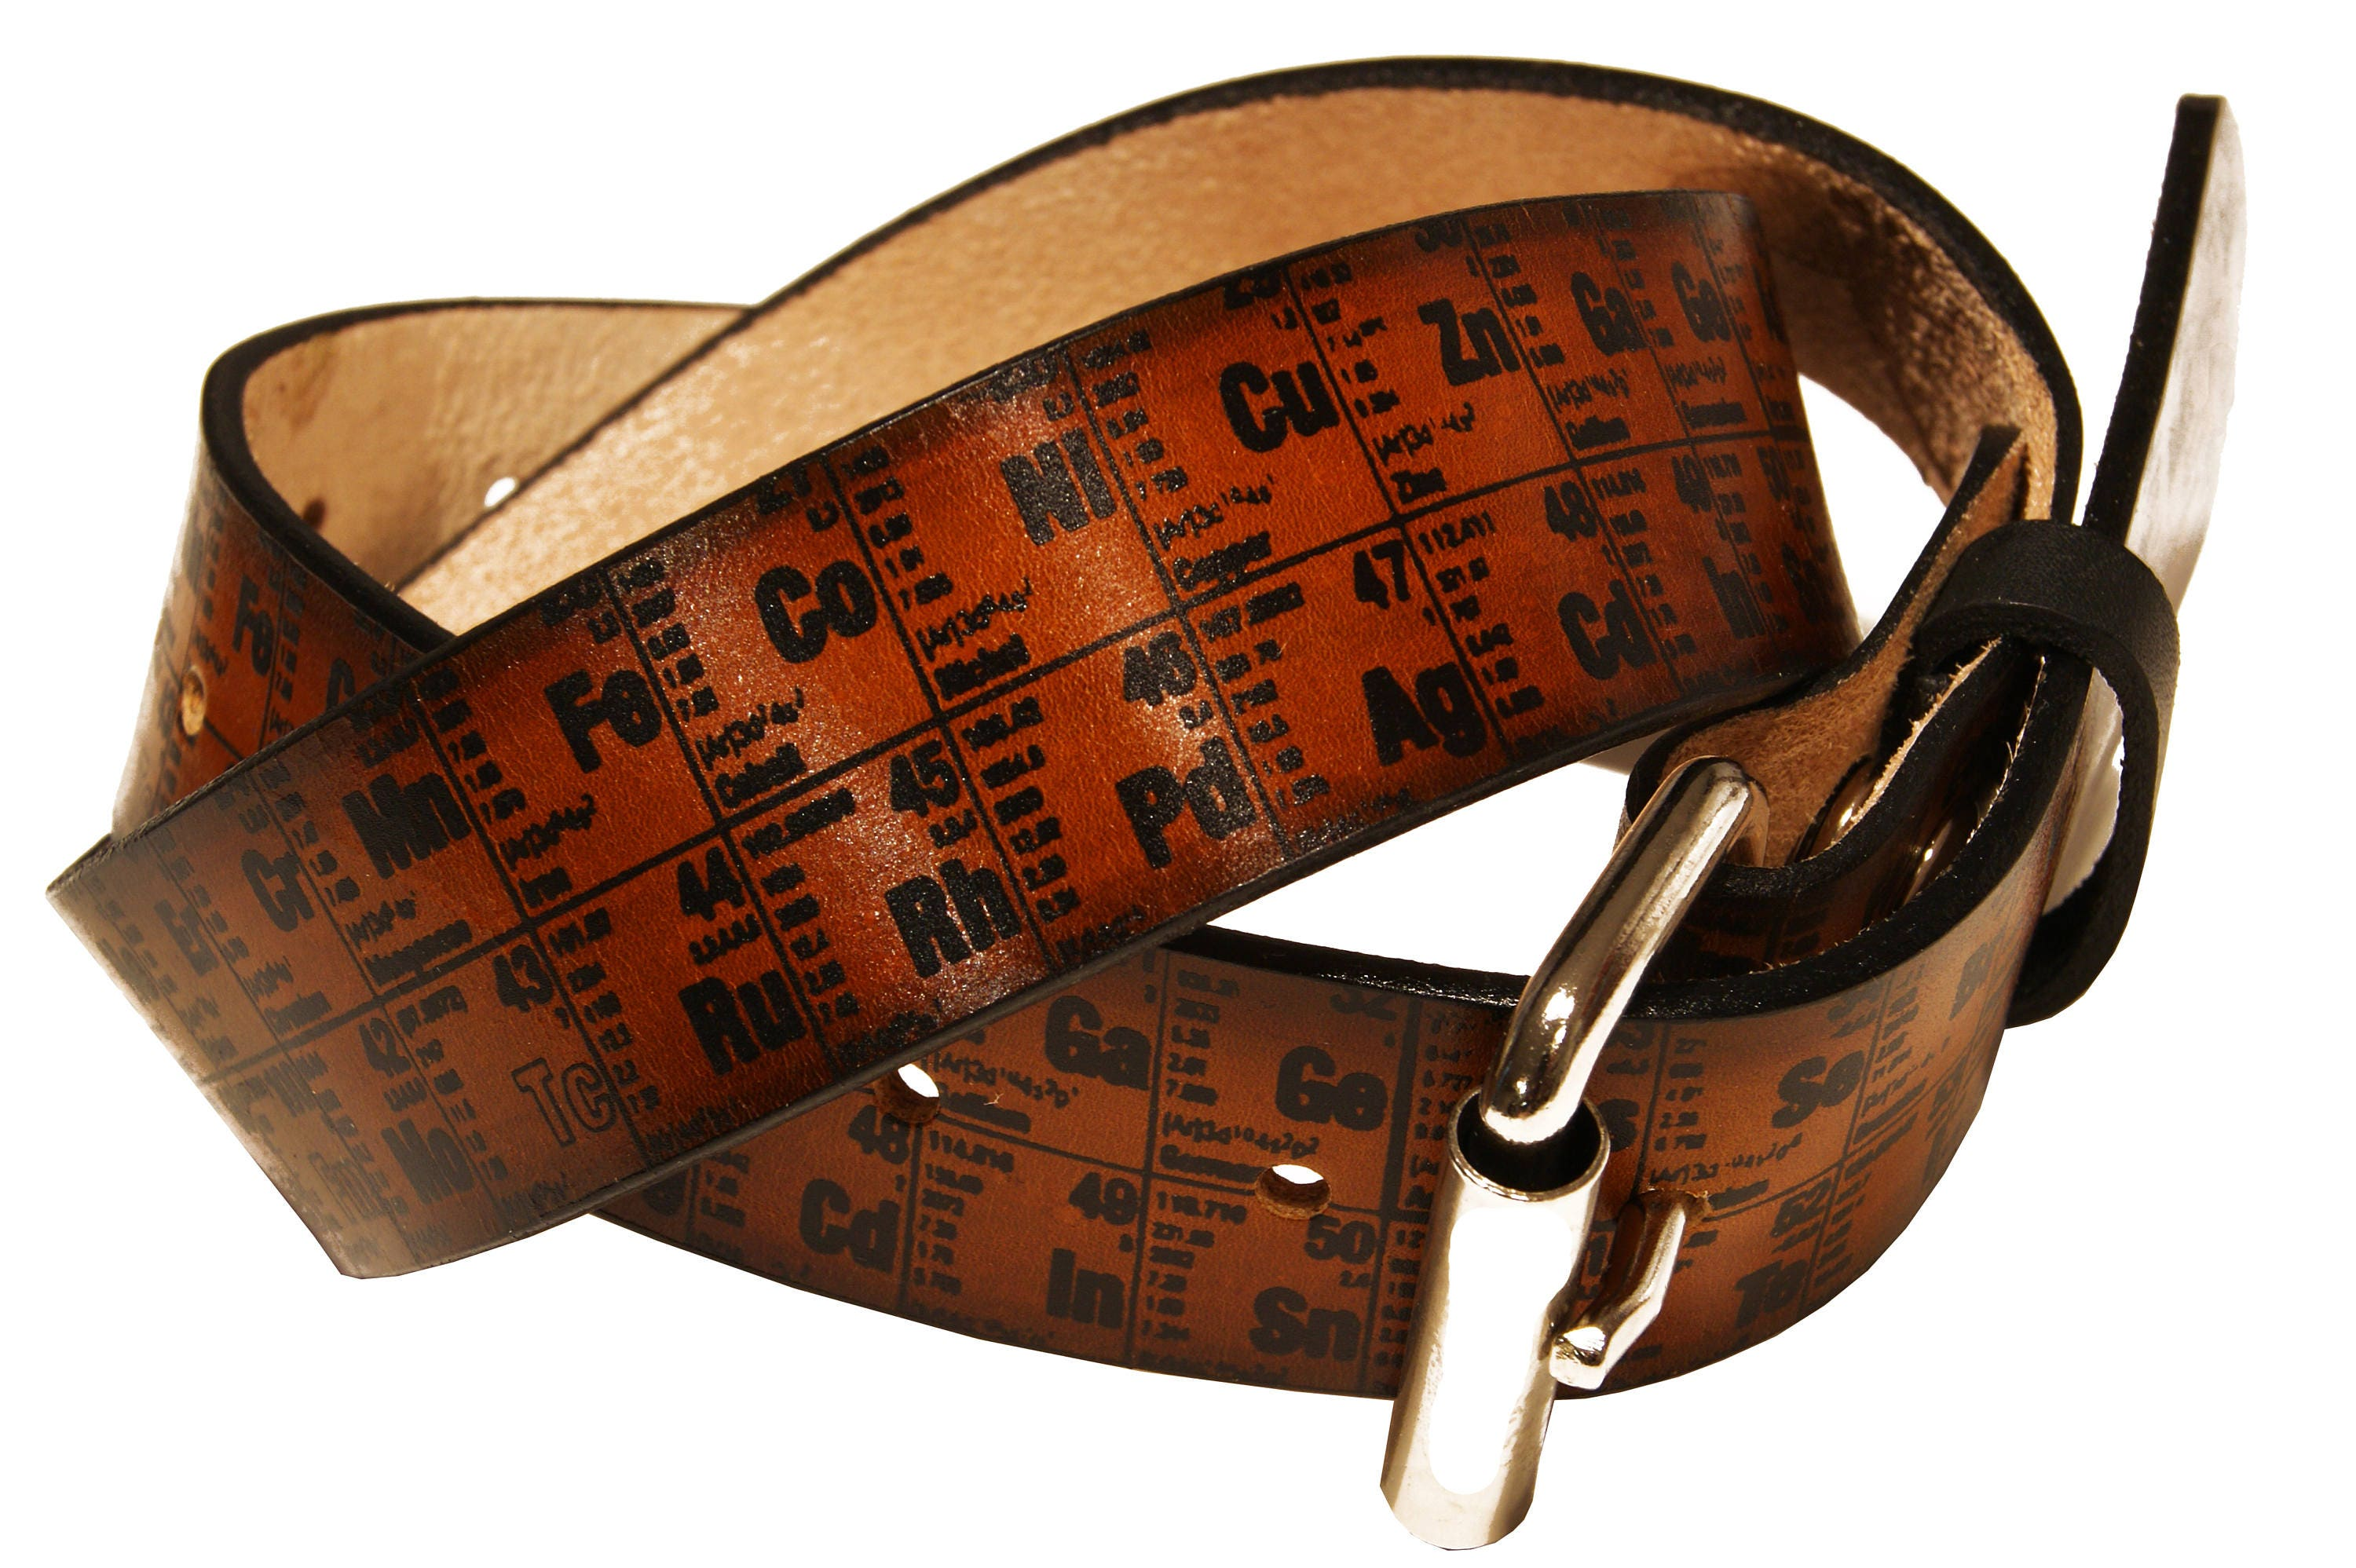 Periodic table of elements leather belt details project transaction is the home of the original periodic table belt gamestrikefo Gallery